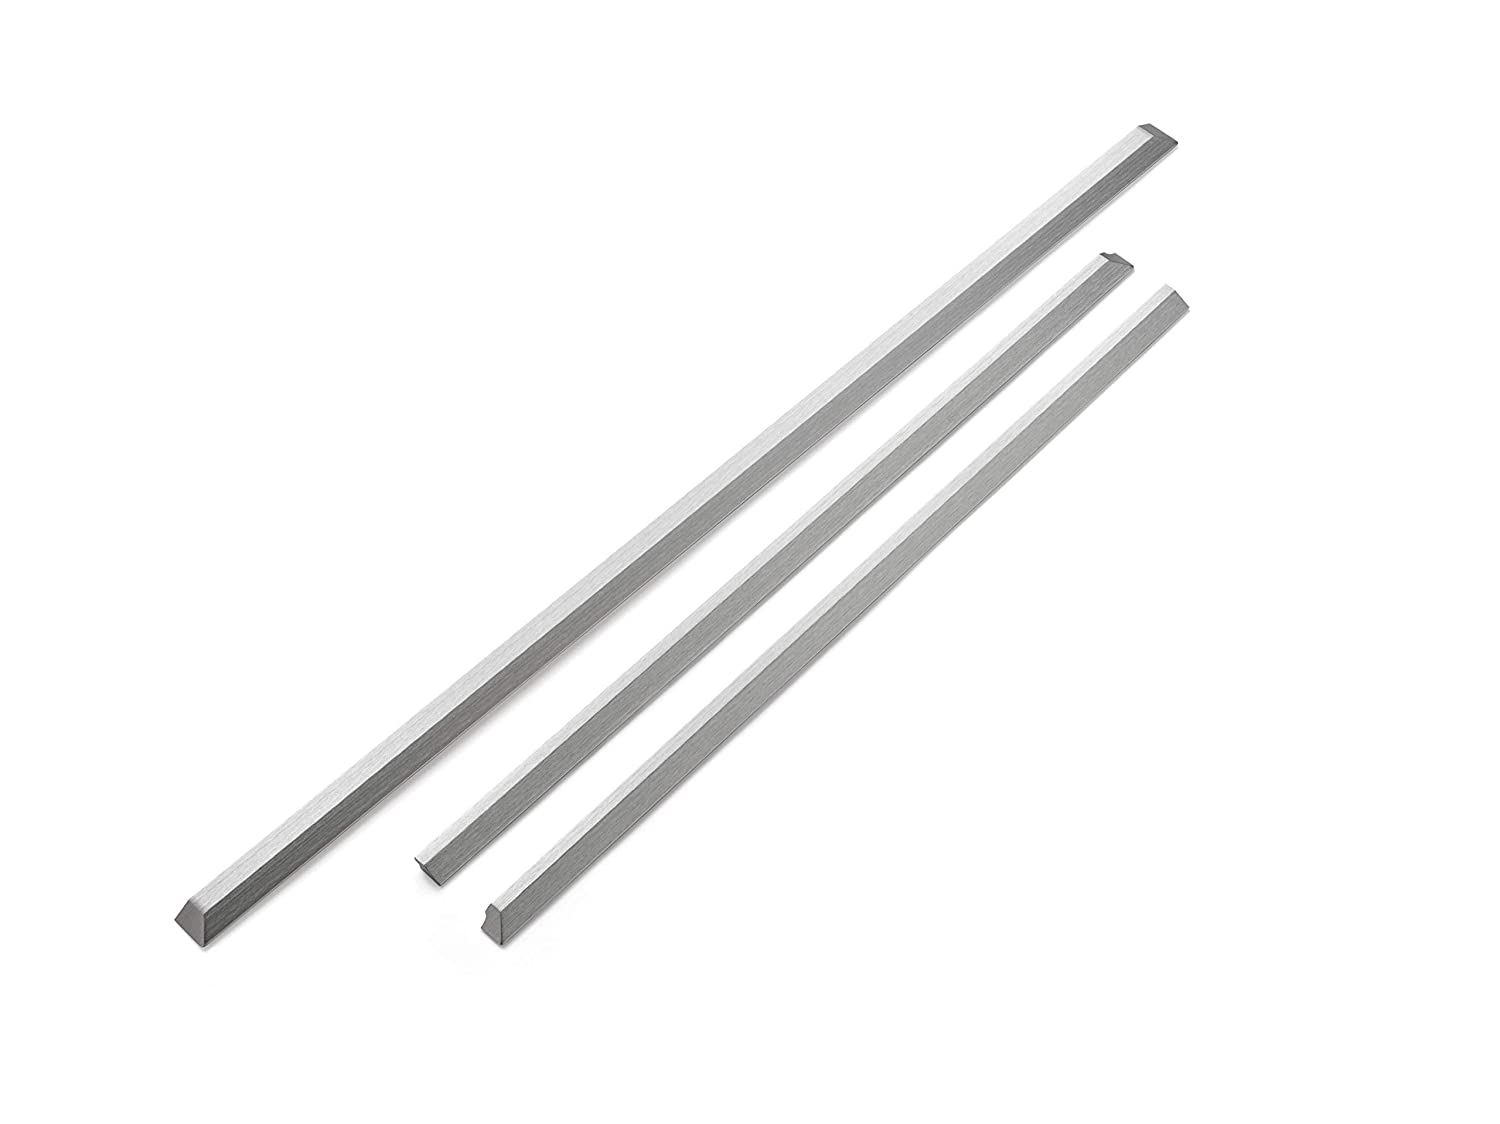 Whirlpool W10675028 Slide-In Range Trim Kit, Stainless Steel